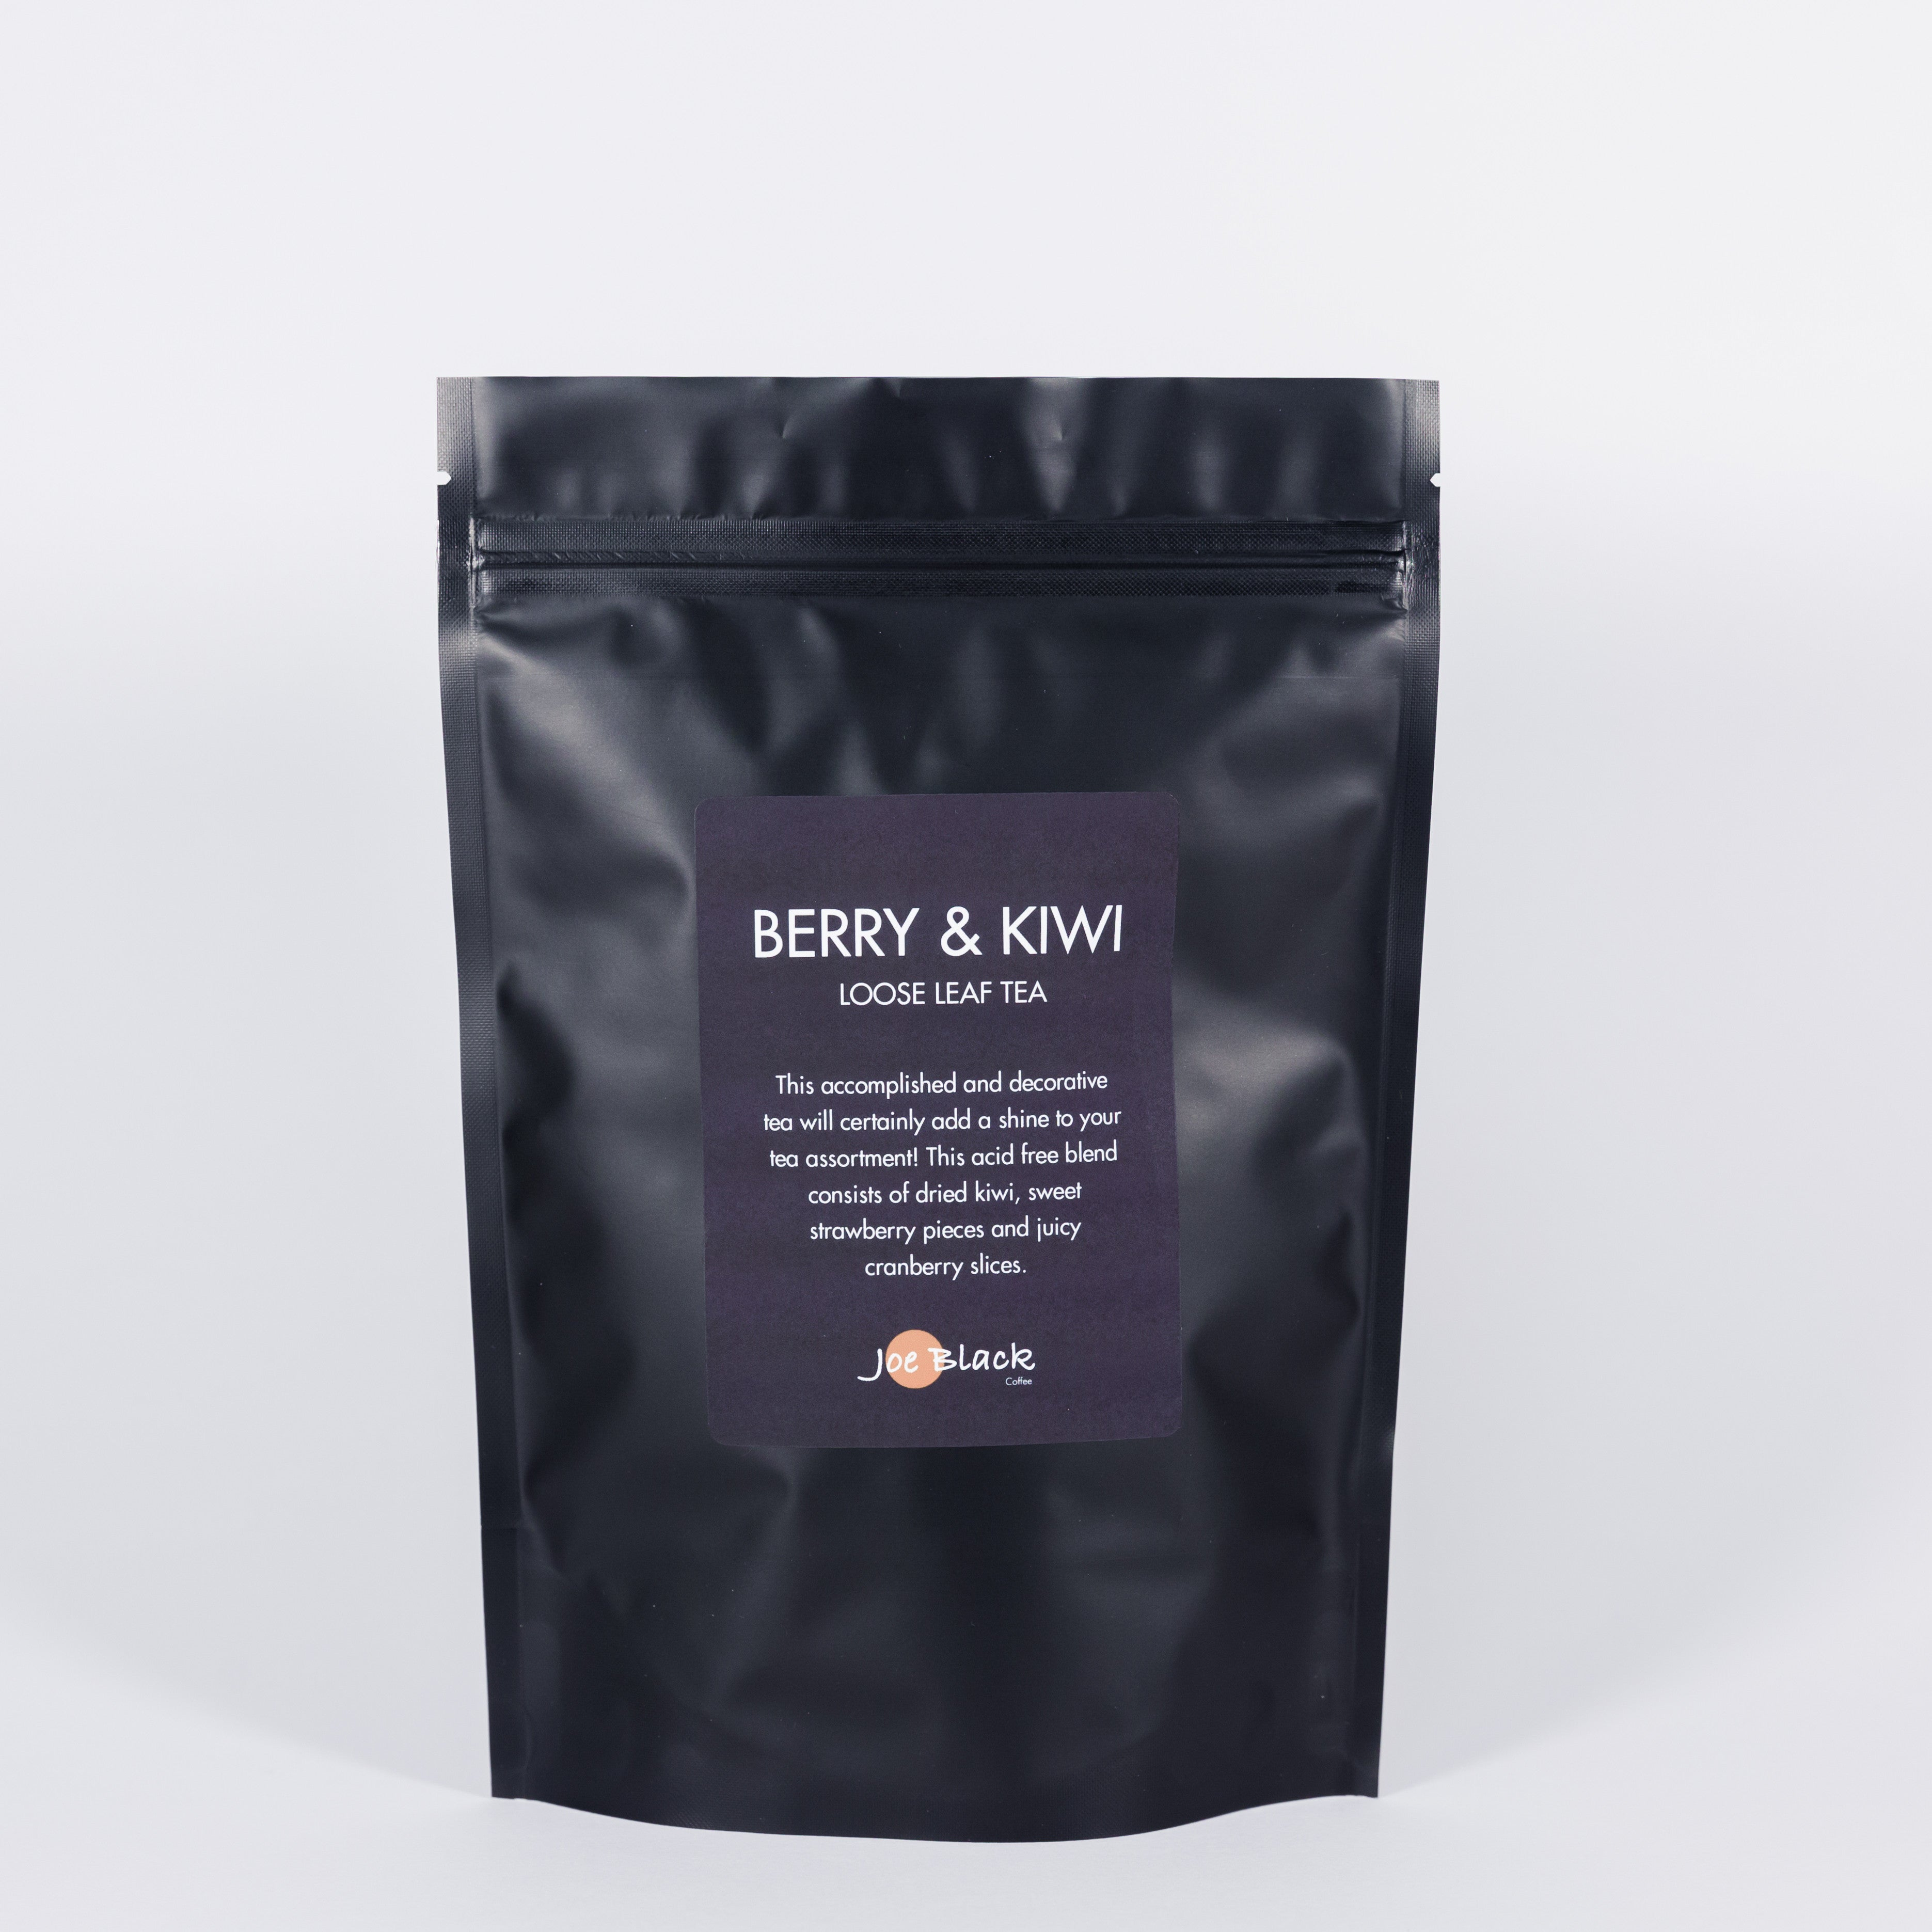 Berry & Kiwi Loose Leaf Tea